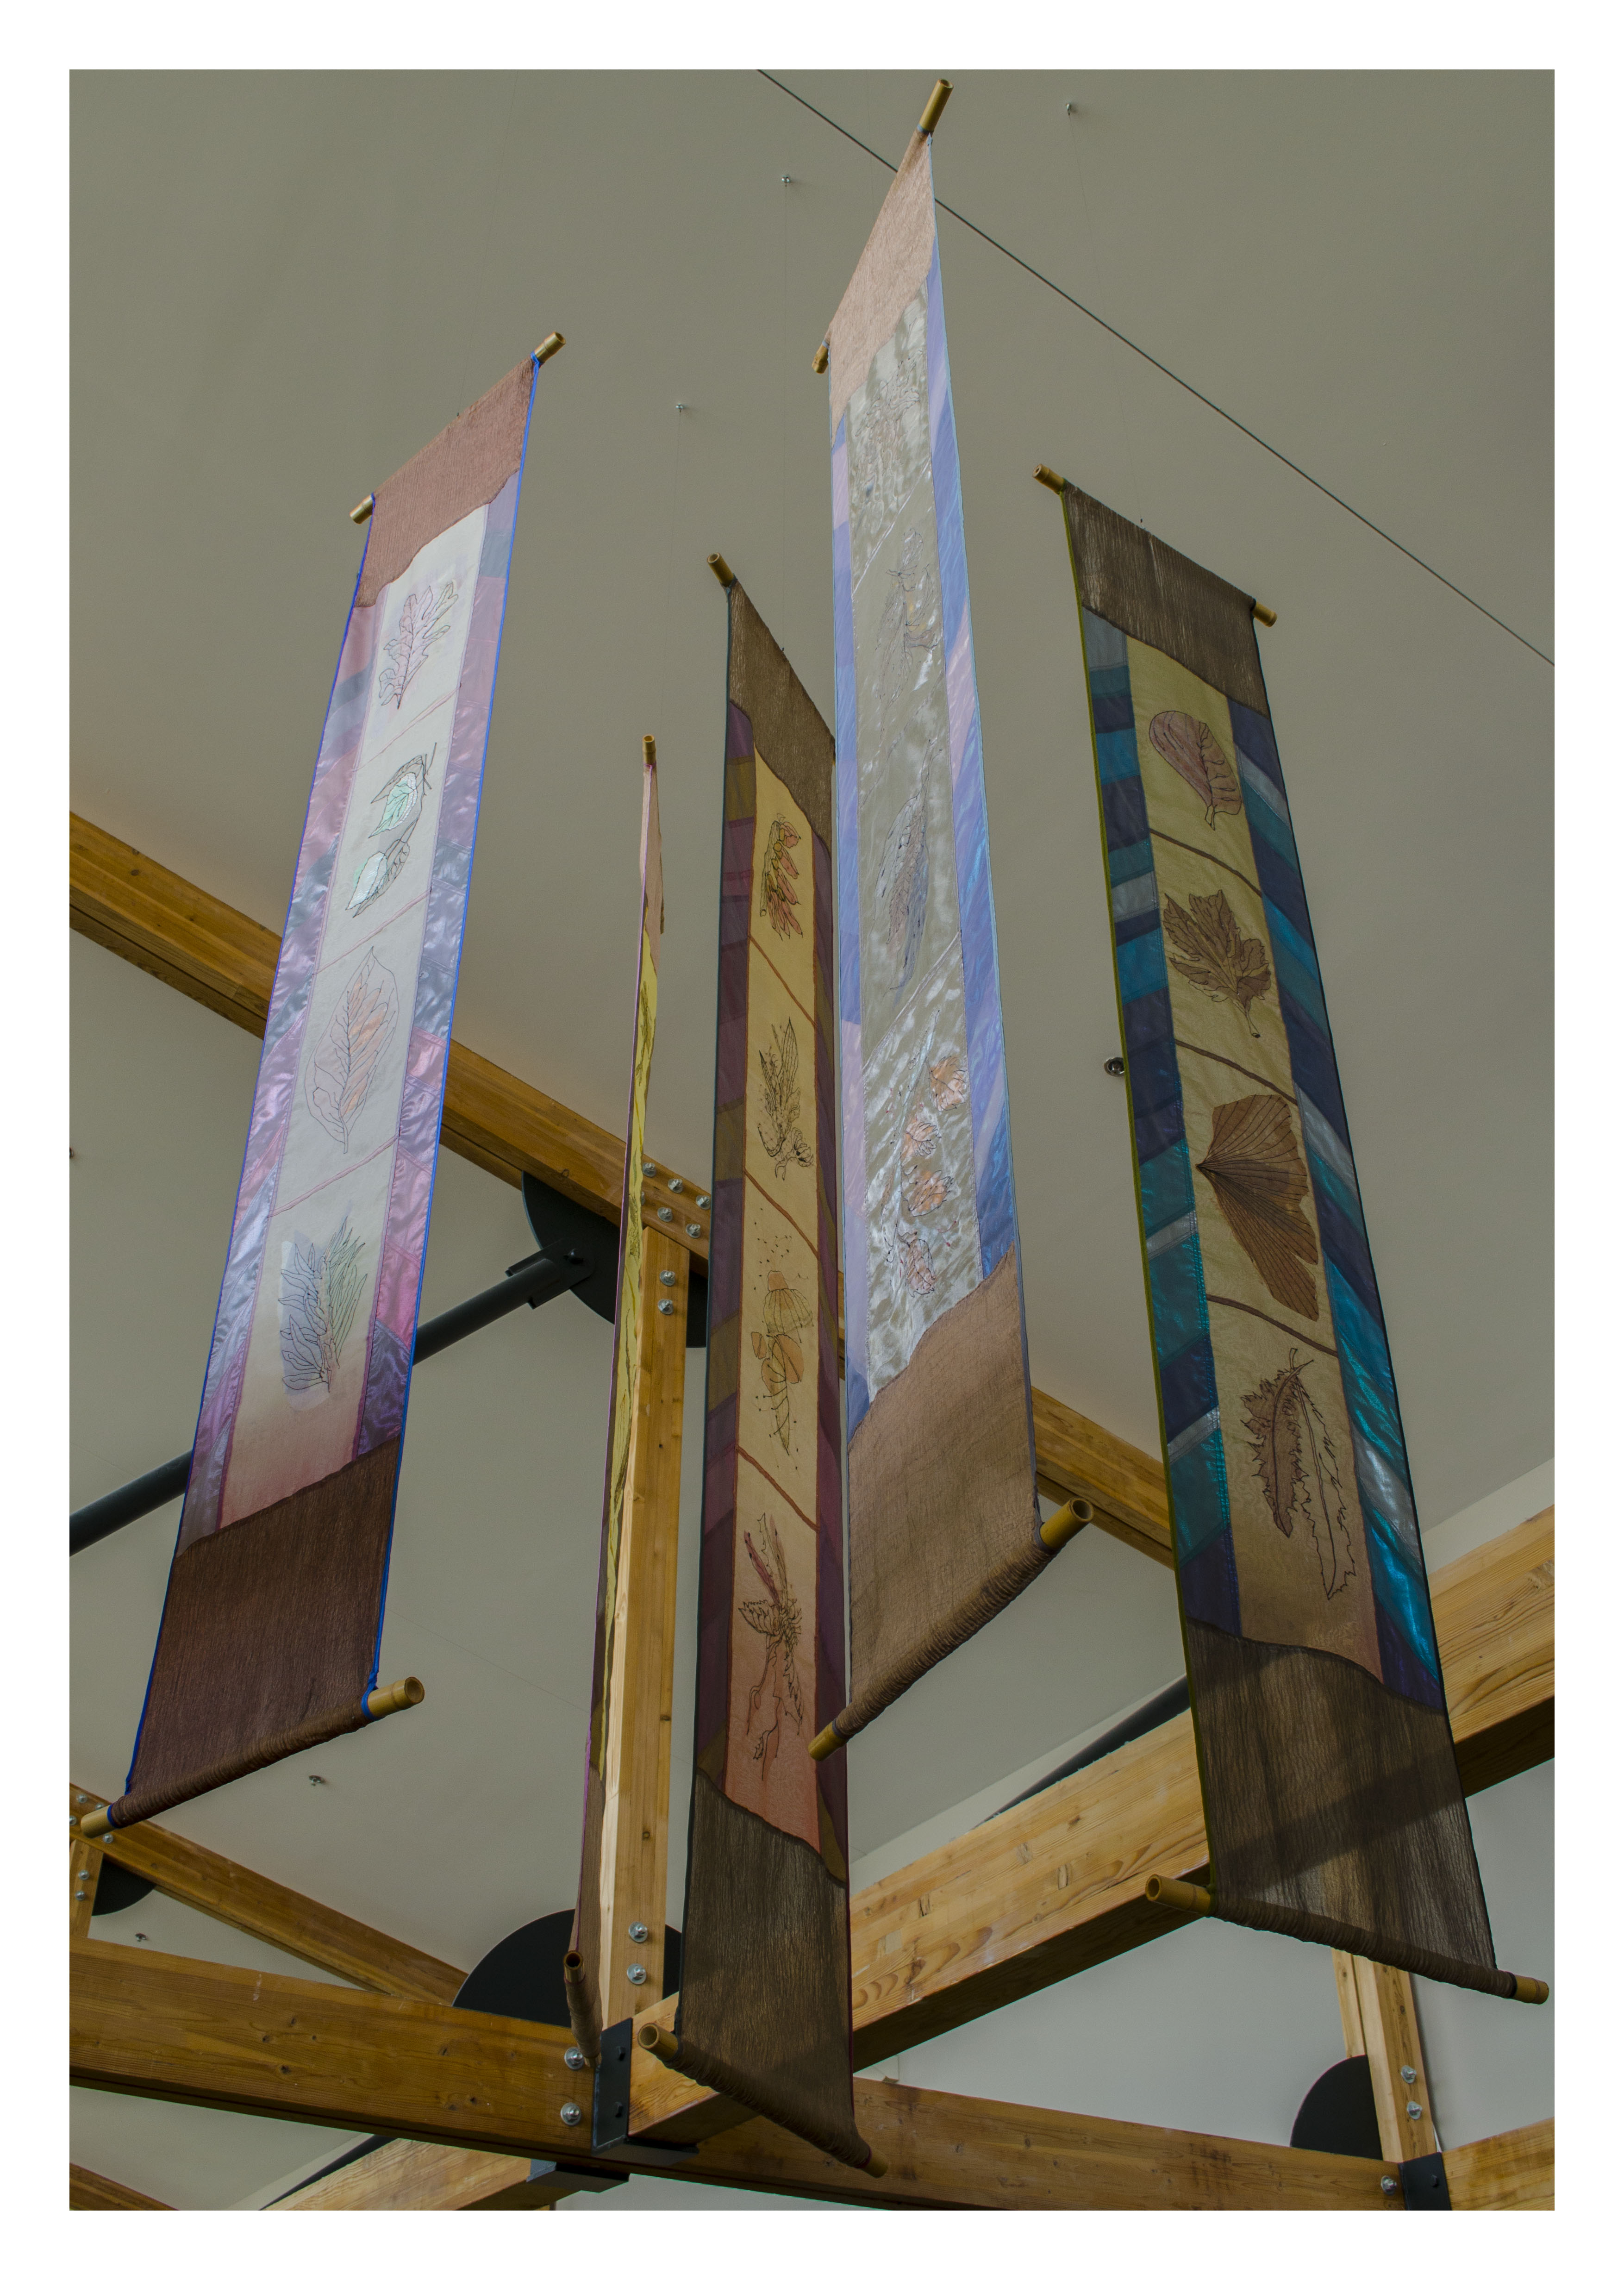 hanging banners with leaf imprints on squares of colorful silk